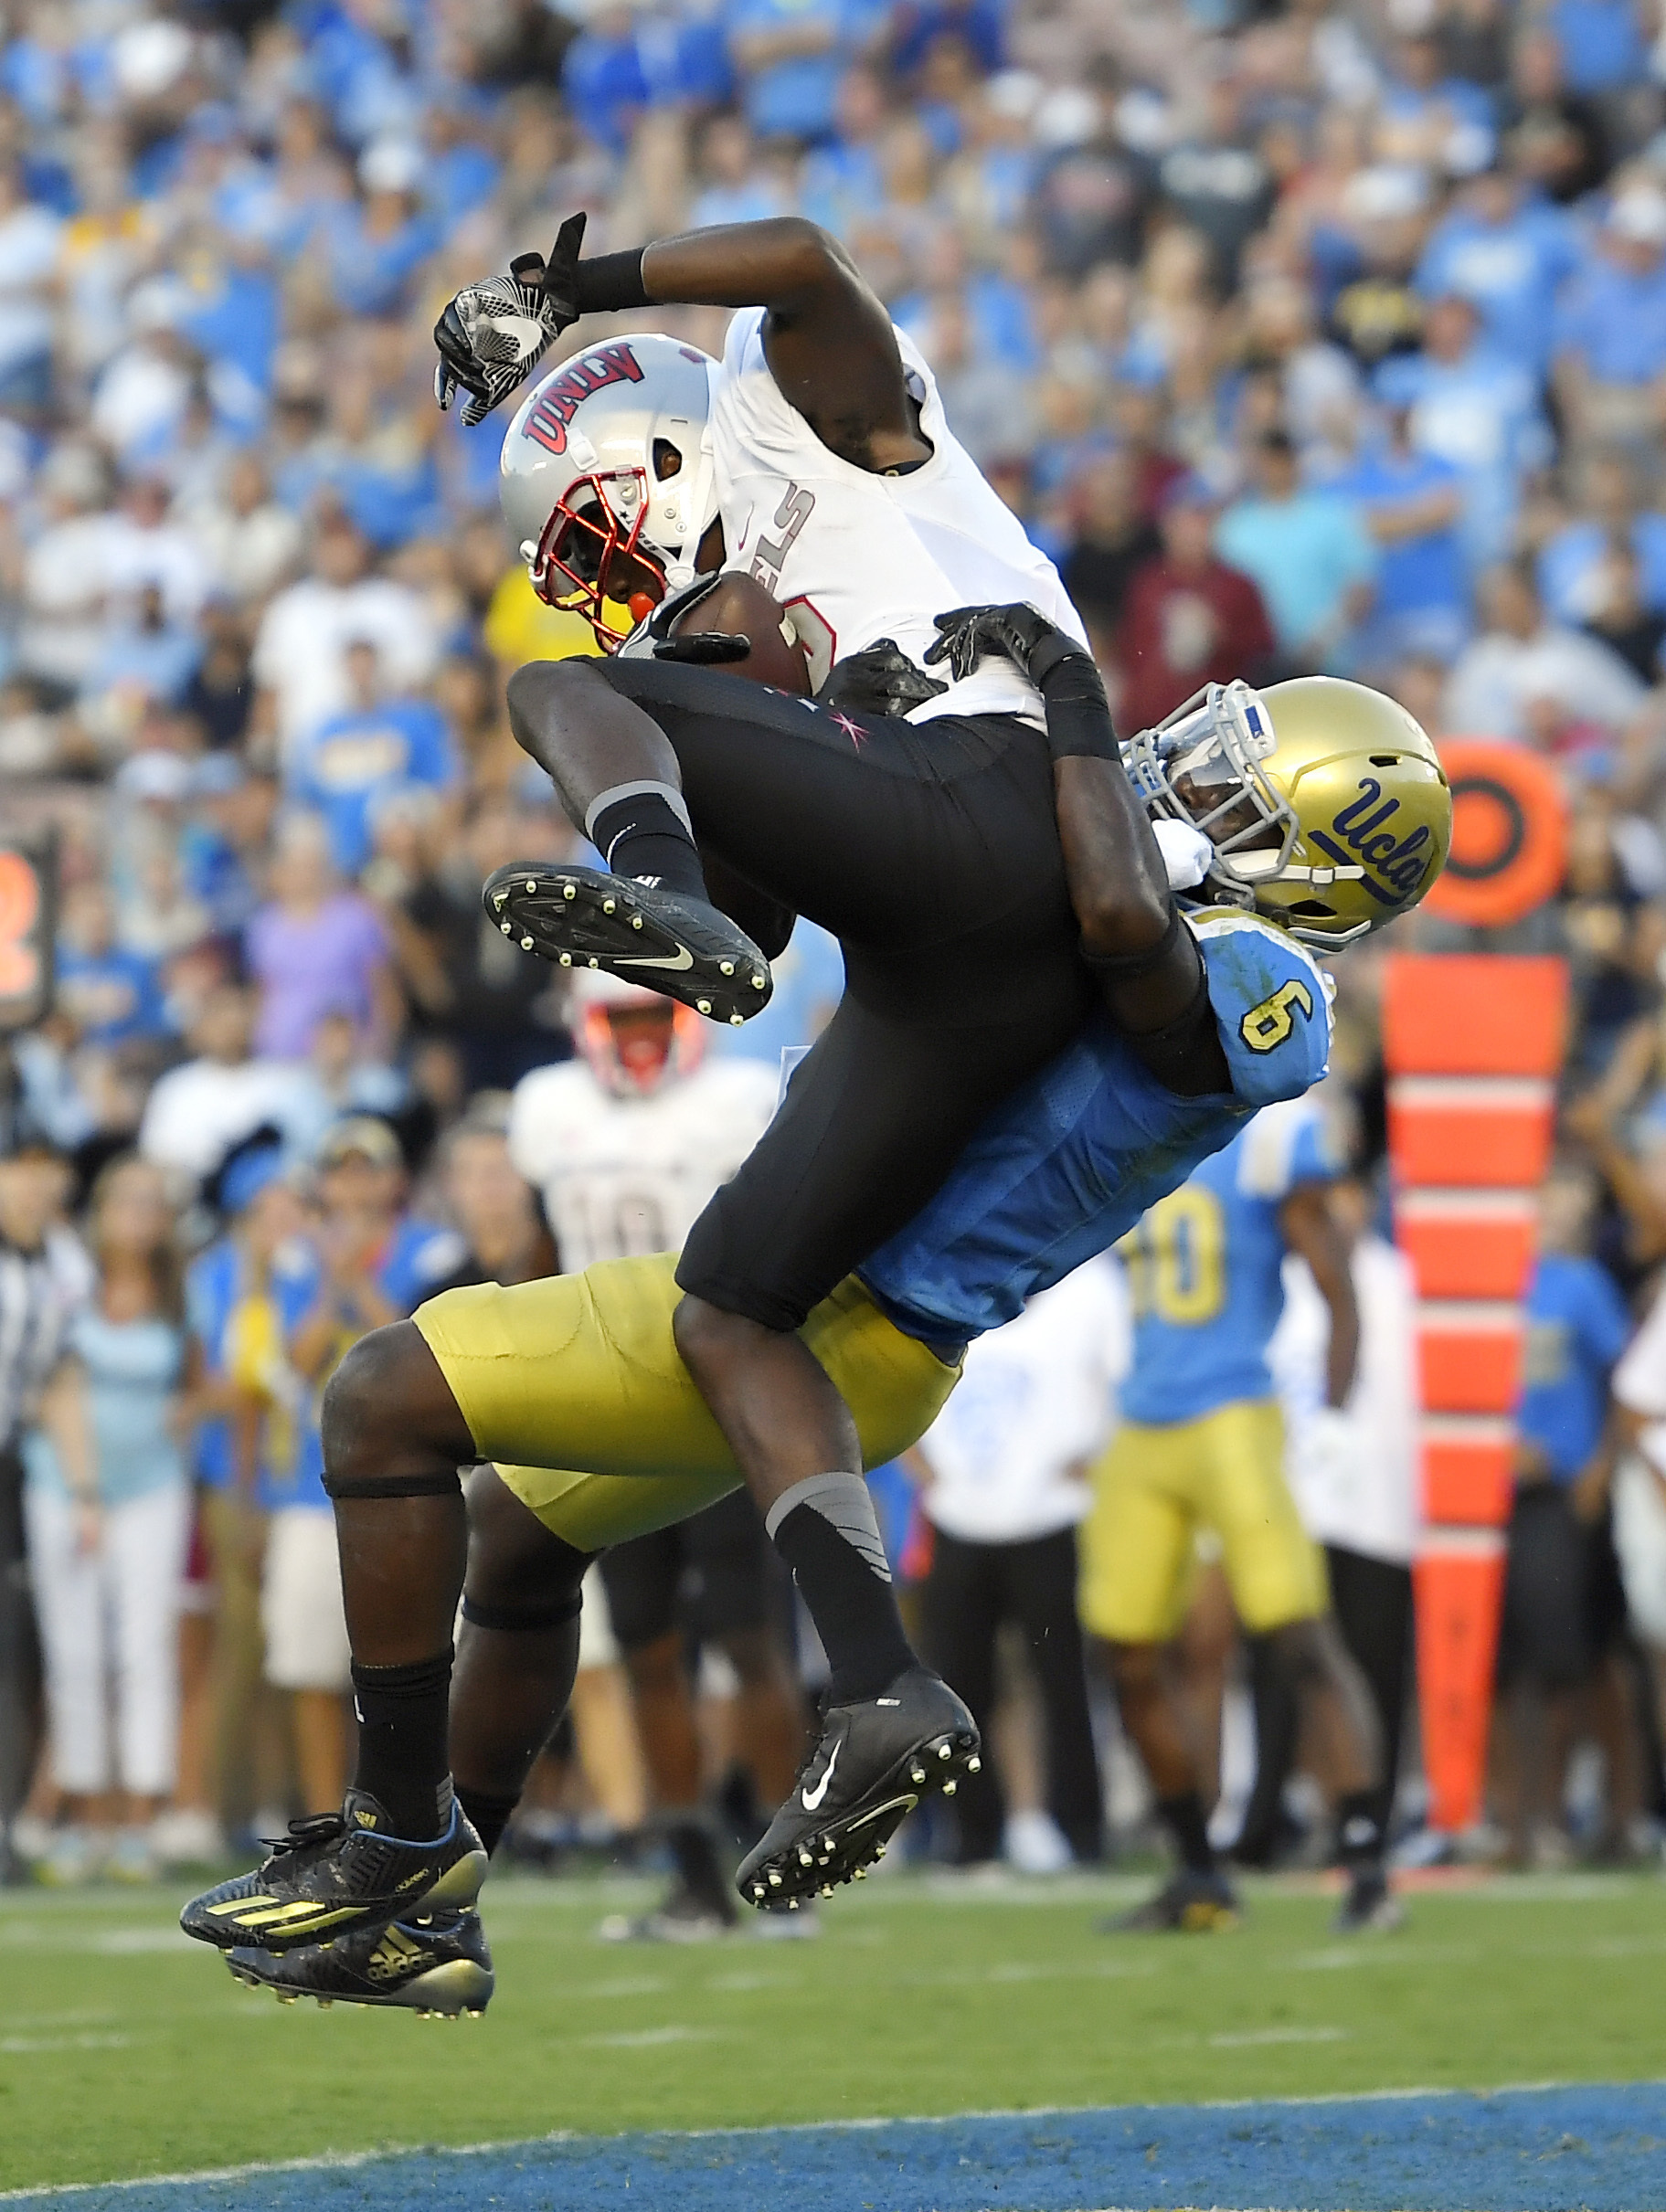 UNLV wide receiver Mekhi Stevenson, left, is pulled down by UCLA defensive back Adarius Pickett after making a touchdown catch during the first half of a college football game, Saturday, Sept. 10, 2016, in Pasadena, Calif. (AP Photo/Mark J. Terrill)